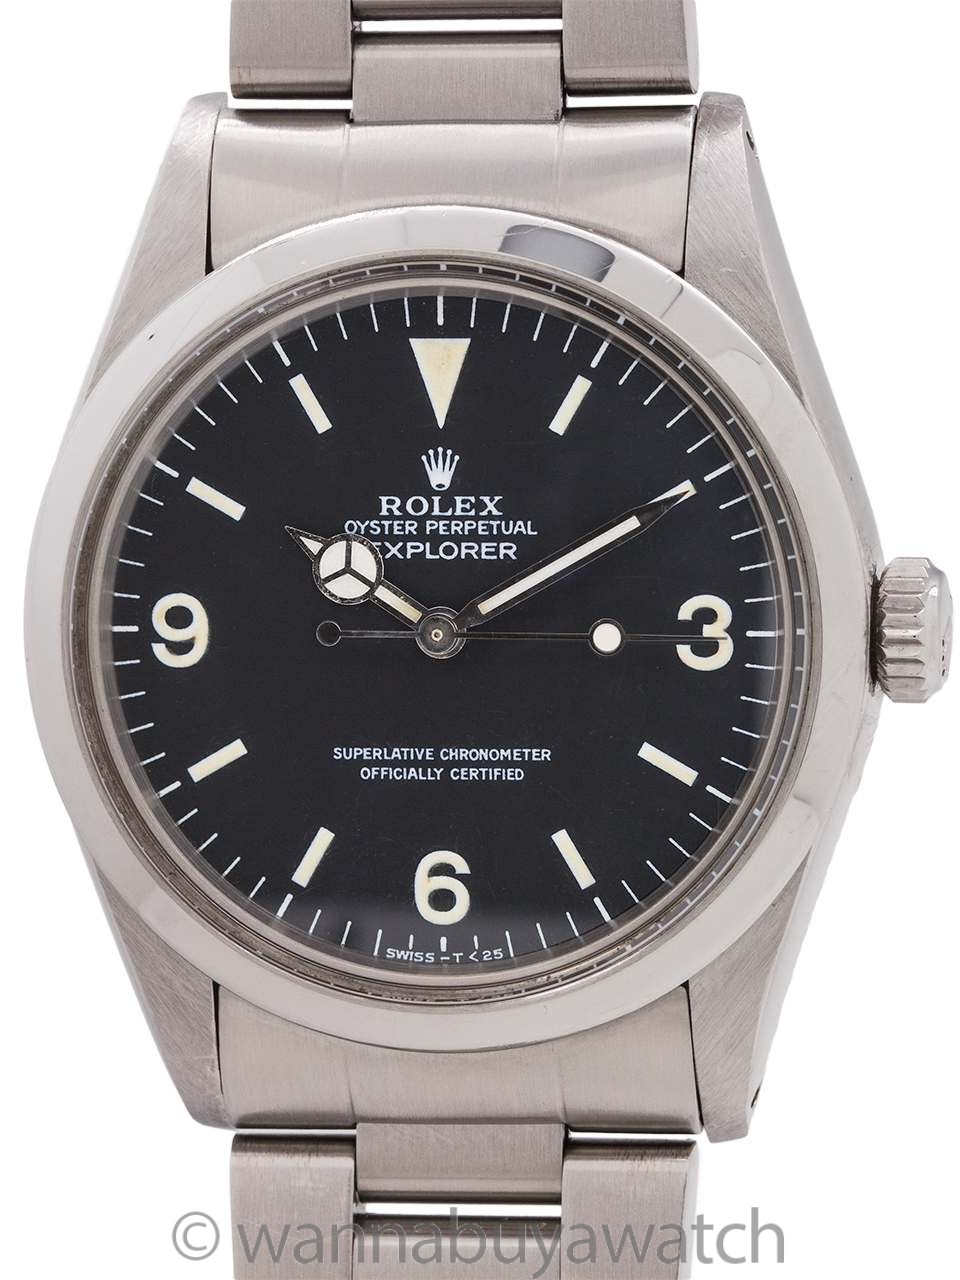 Rolex Explorer 1 ref 1016 Hack Feature circa 1982